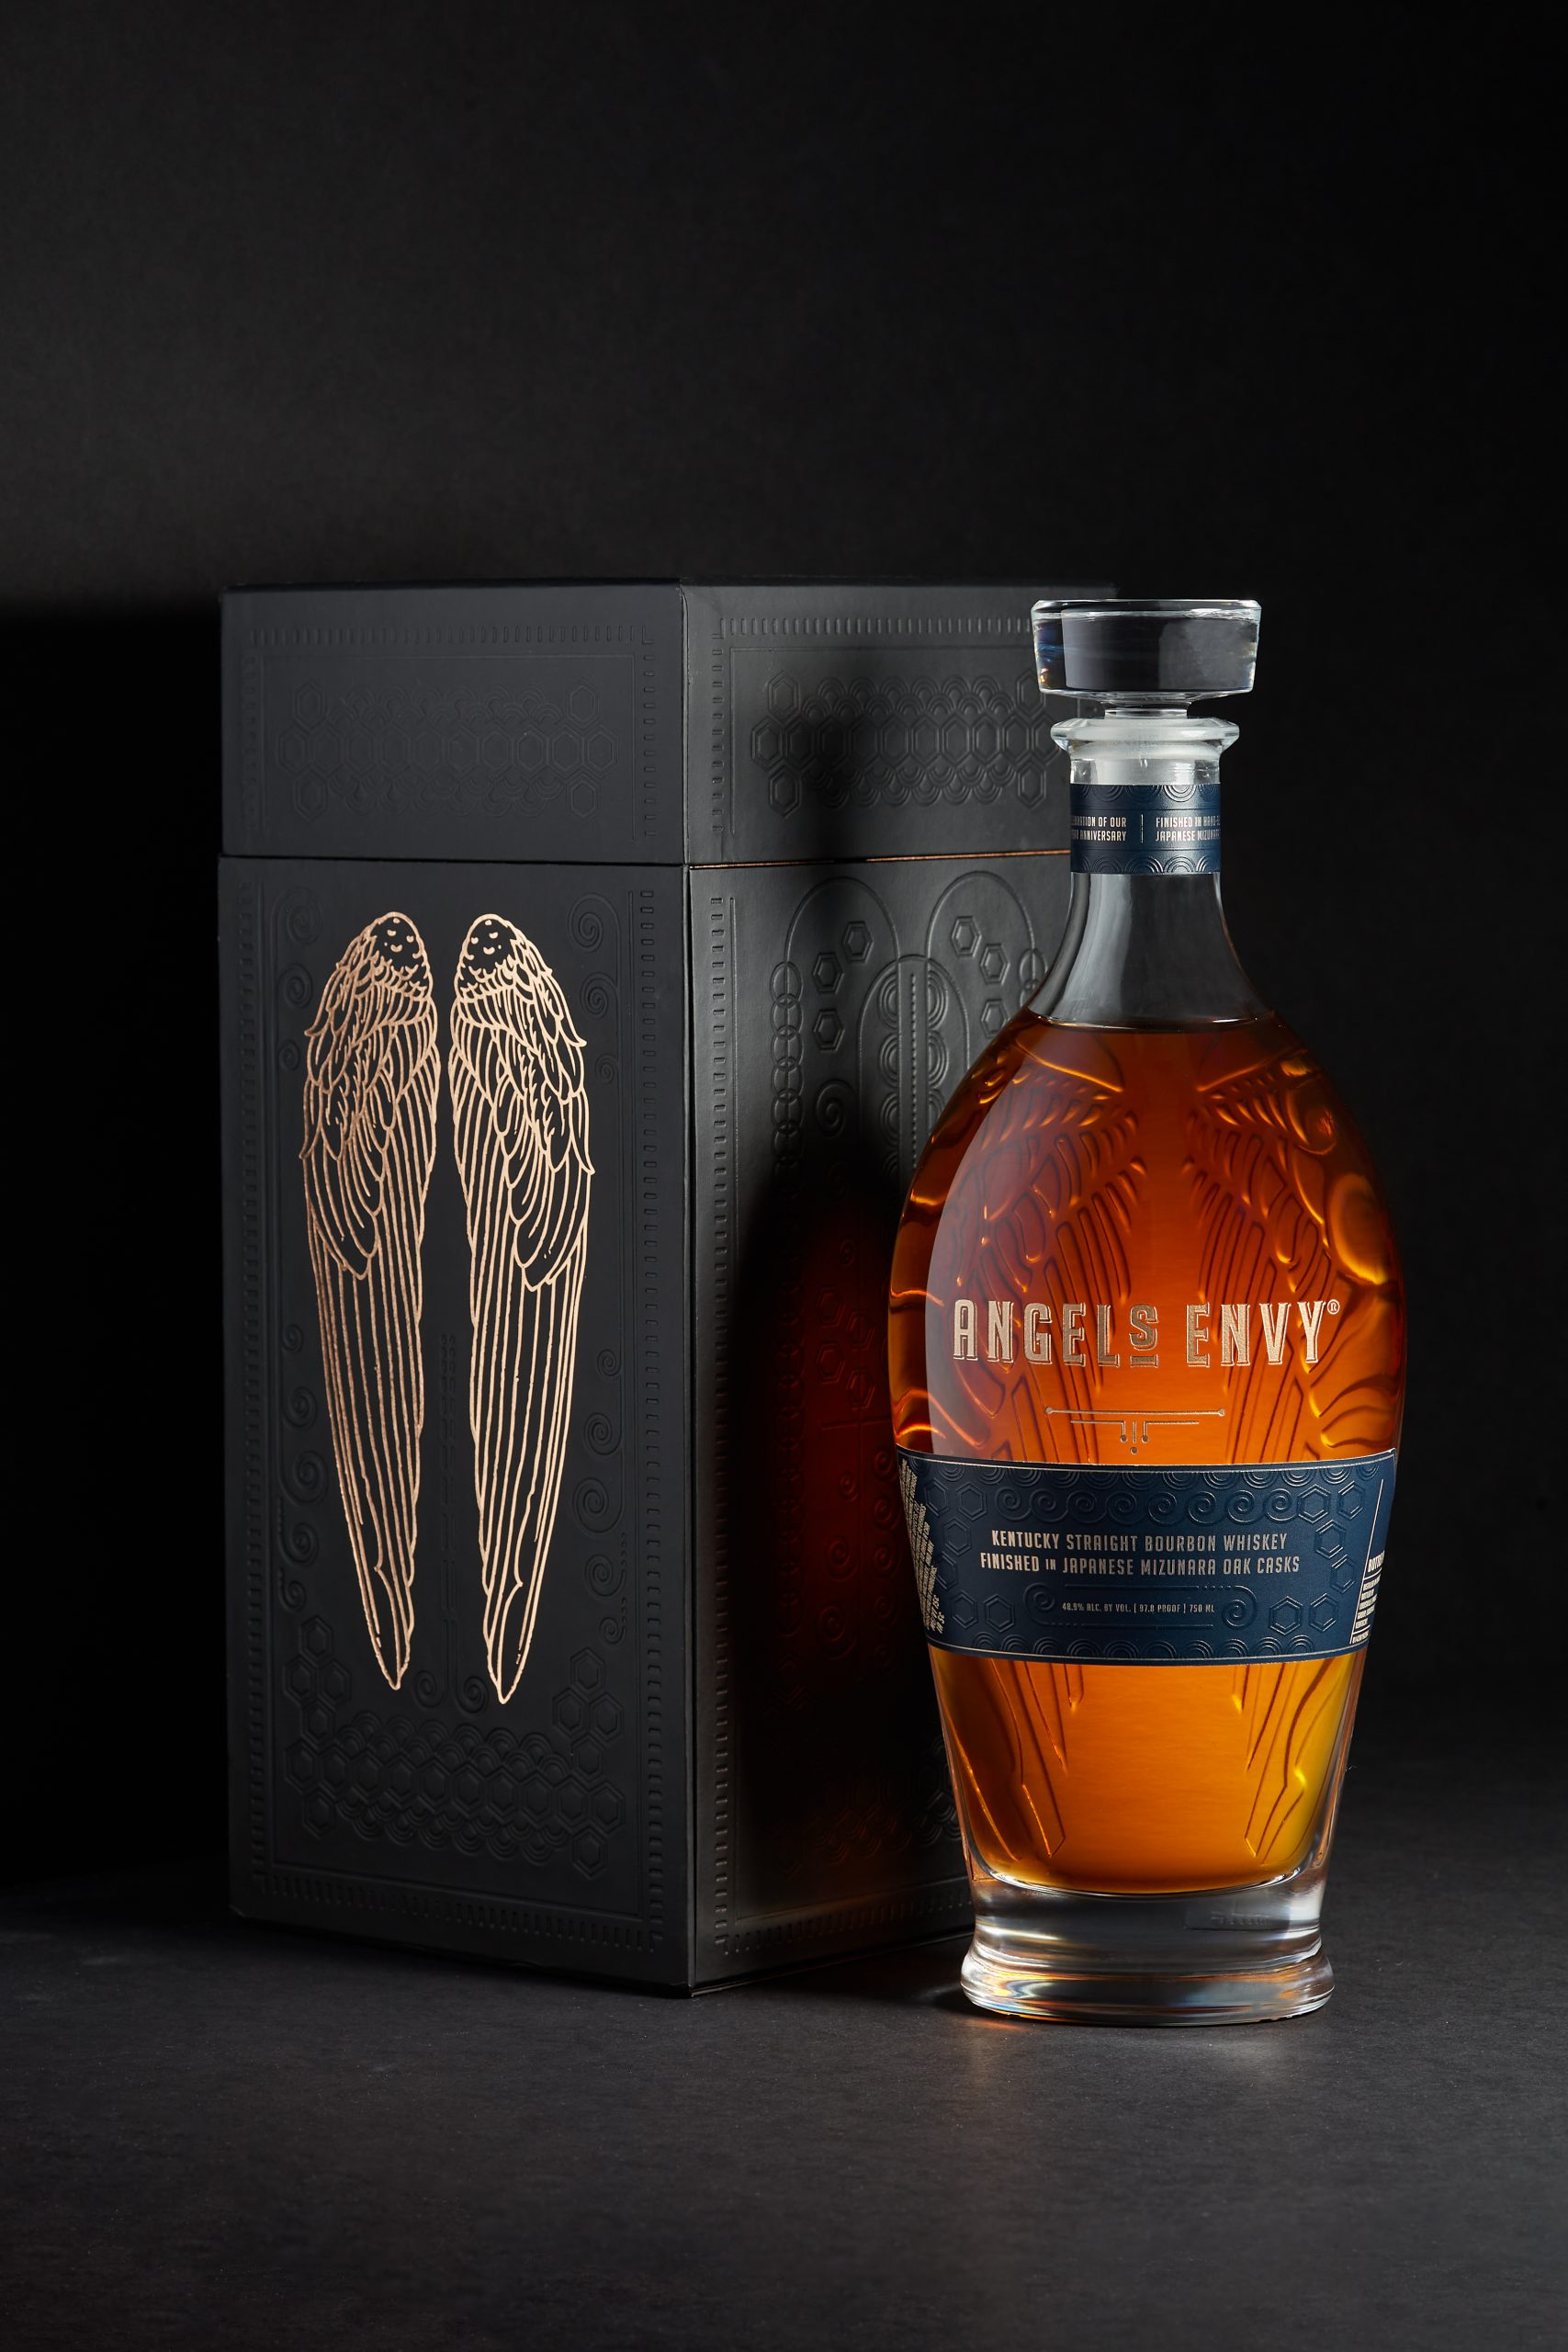 Angel's Envy Bourbon Whiskey Finished In Mizunara Oak Casks 2020